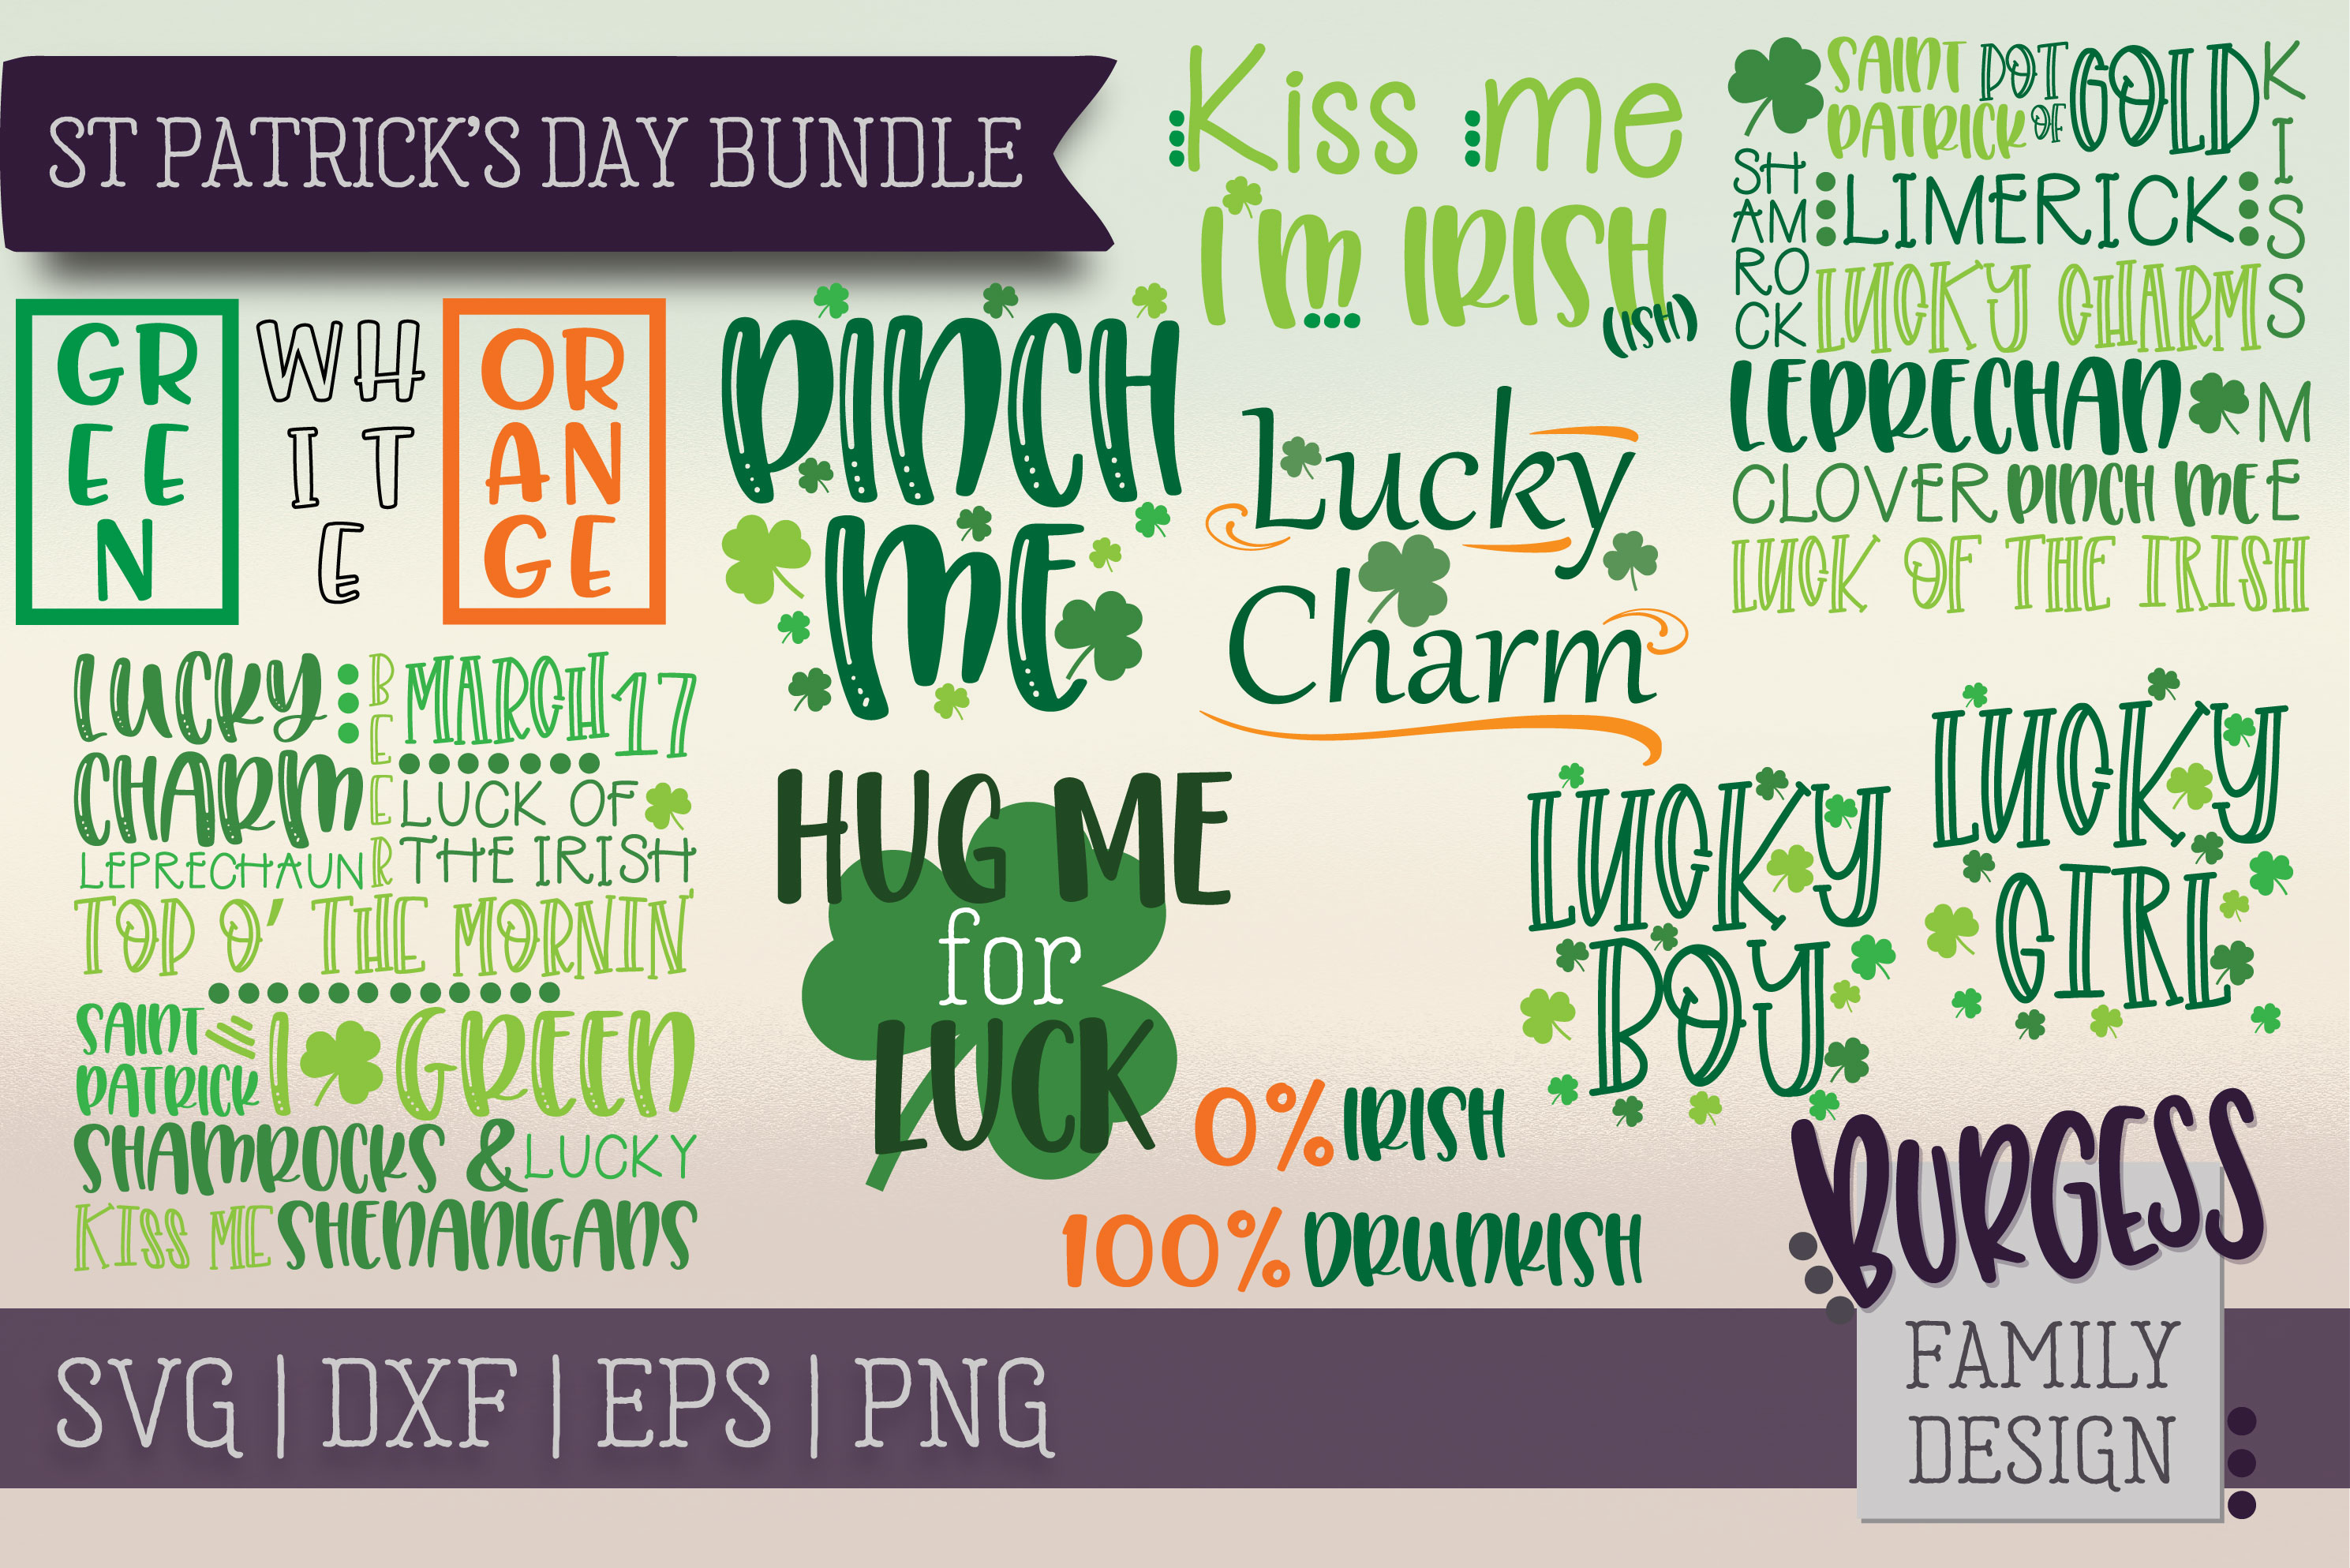 St Patrick's Day Bundle | SVG DXF EPS PNG example image 1